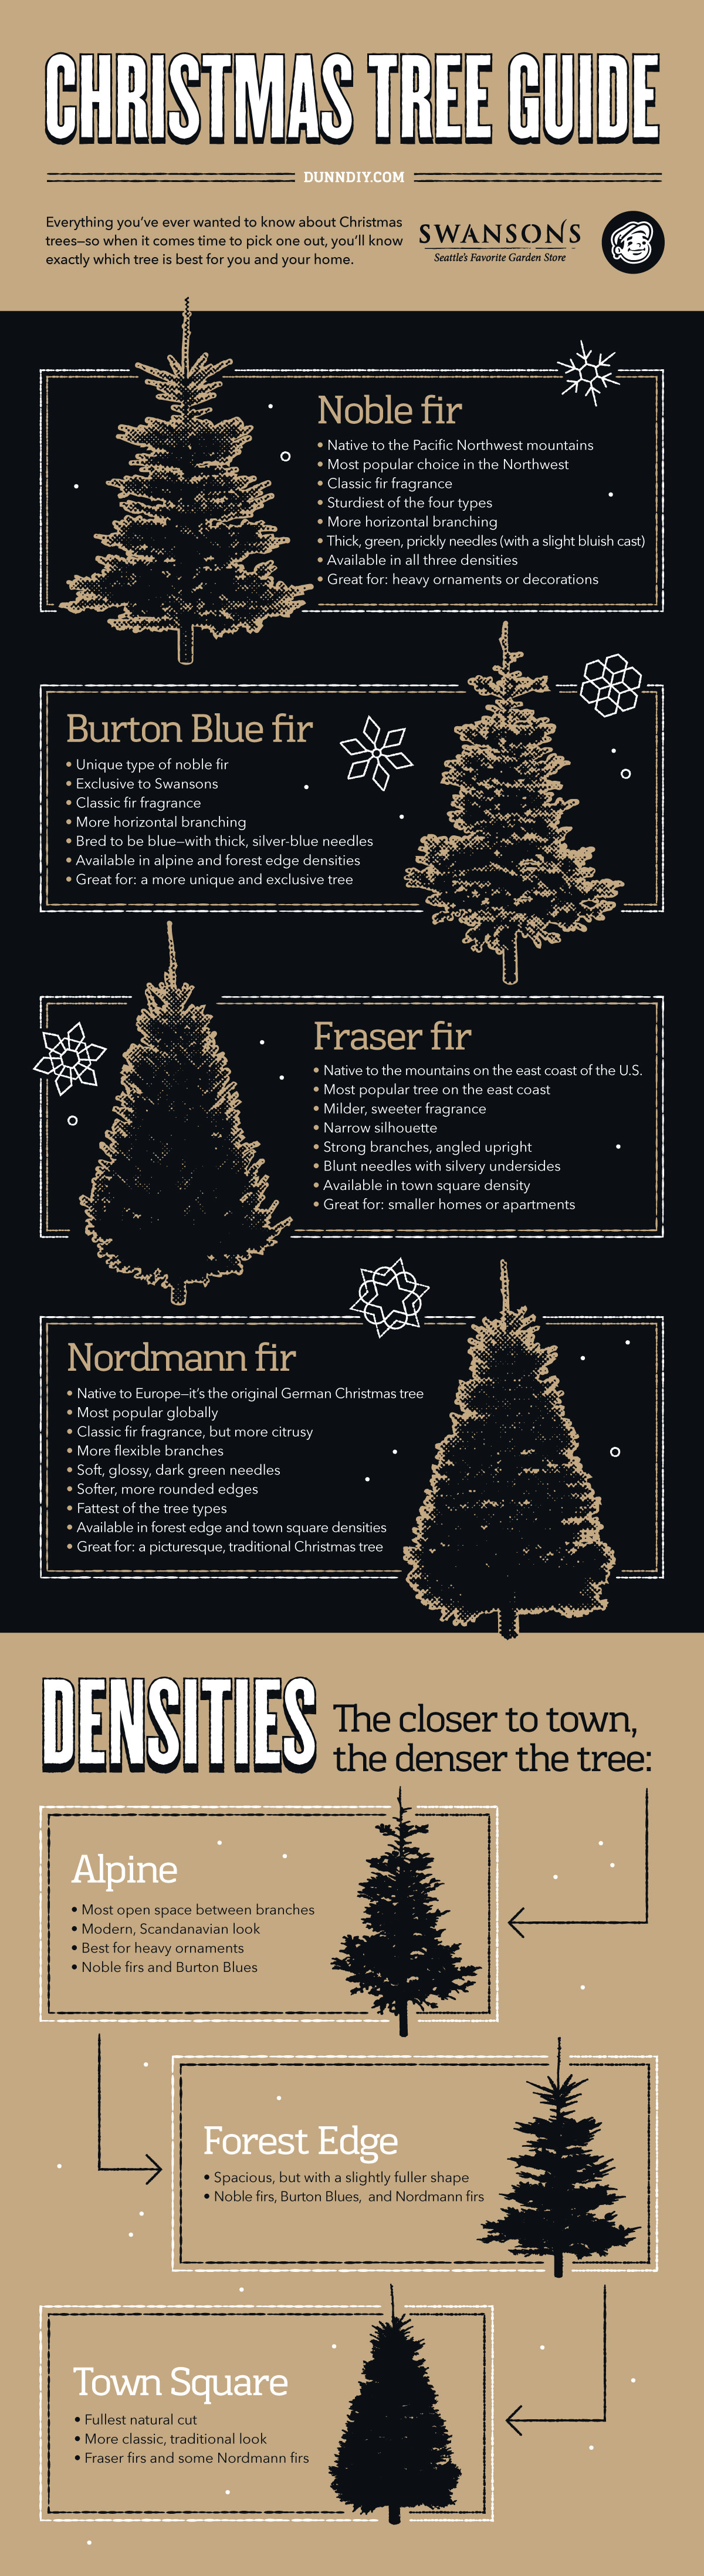 Swansons' Christmas Tree Comparison Guide